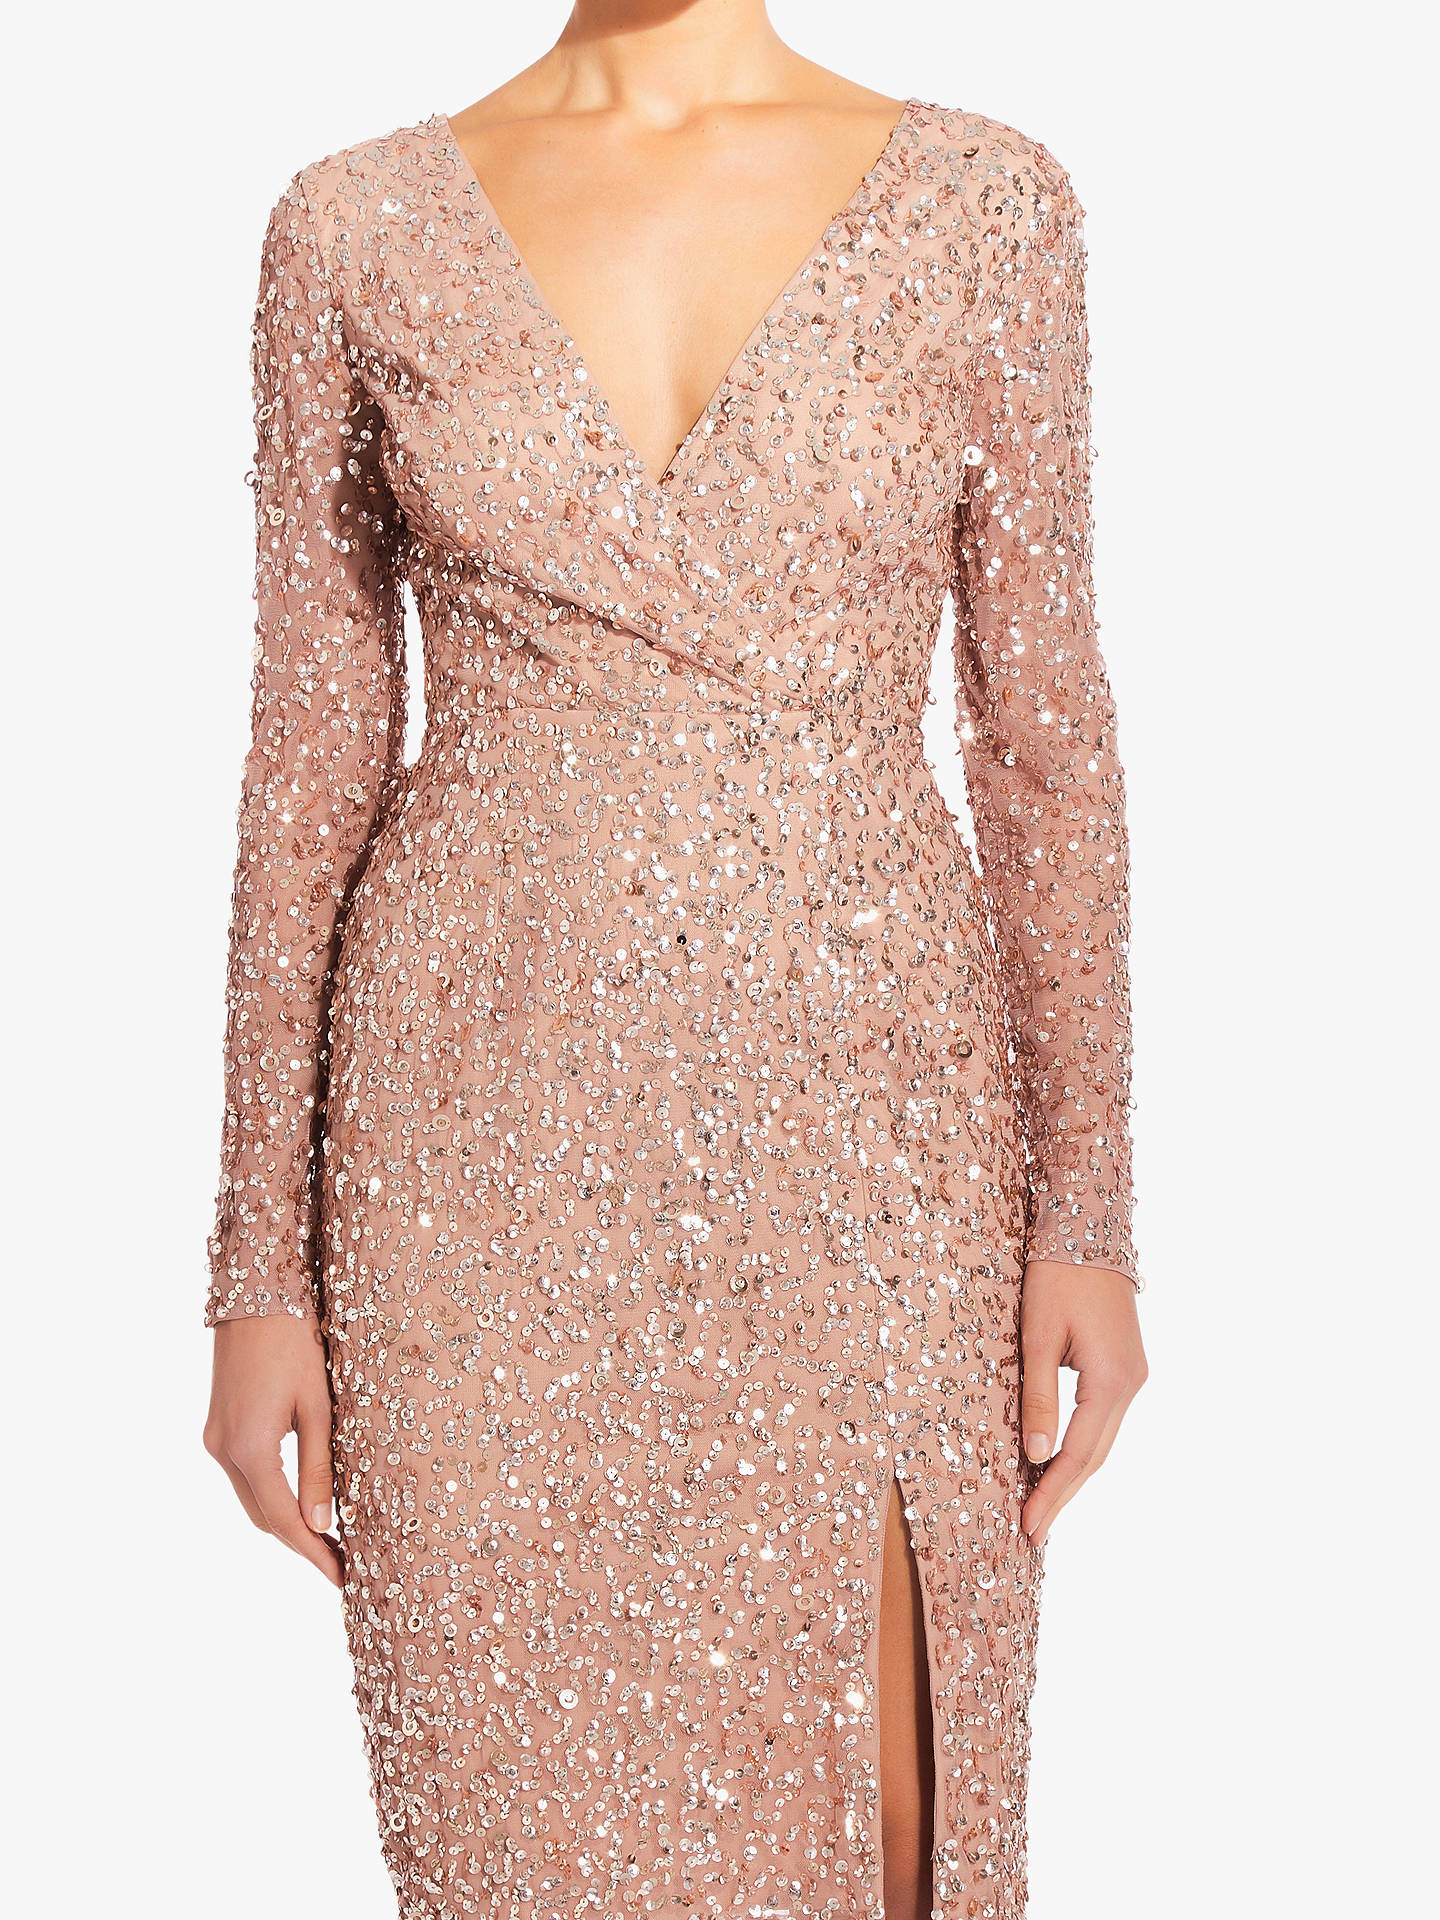 Adrianna Papell Beaded Wrap Dress Rose Gold At John Lewis Partners